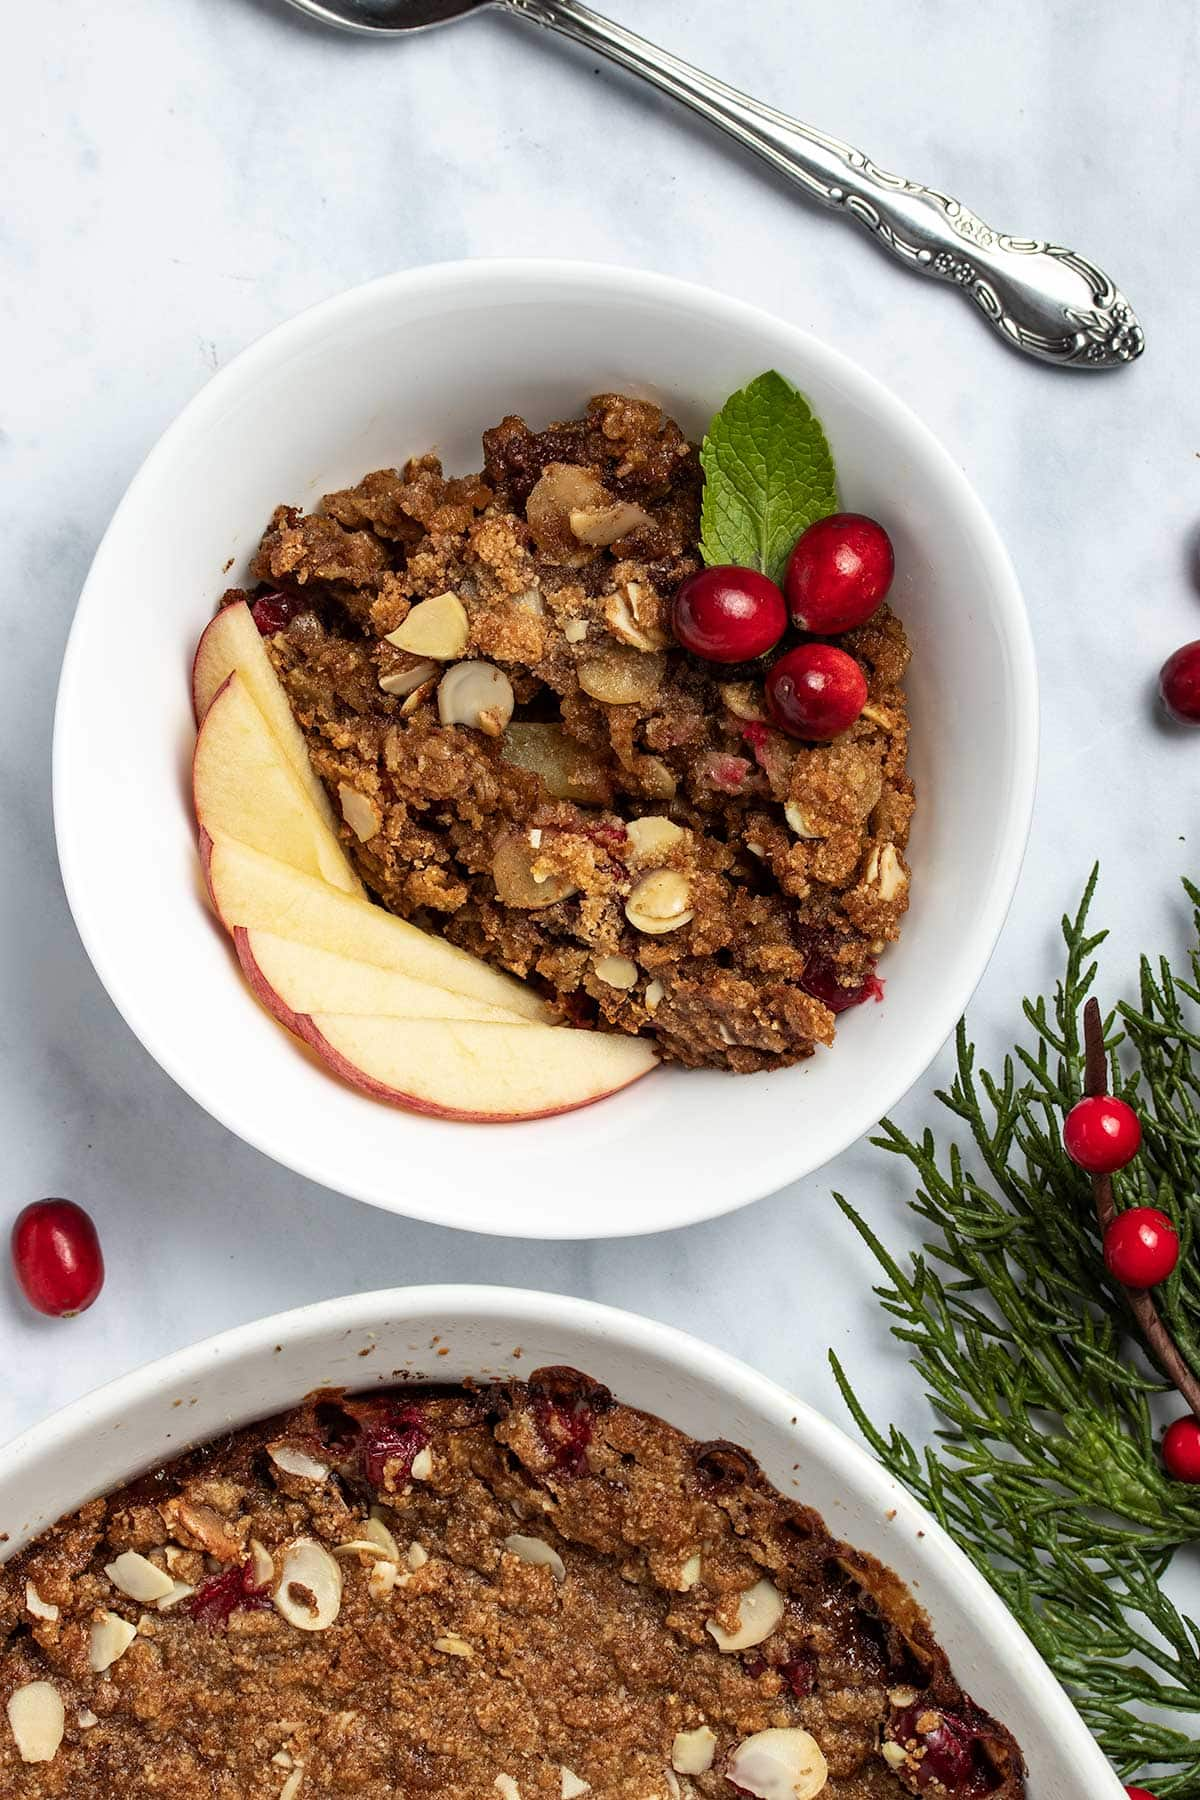 Cranberry Apple Baked Oatmeal in a white bowl garnished with sliced apple, cranberries and a mint leaf, next to baked oatmeal in a white casserole dish